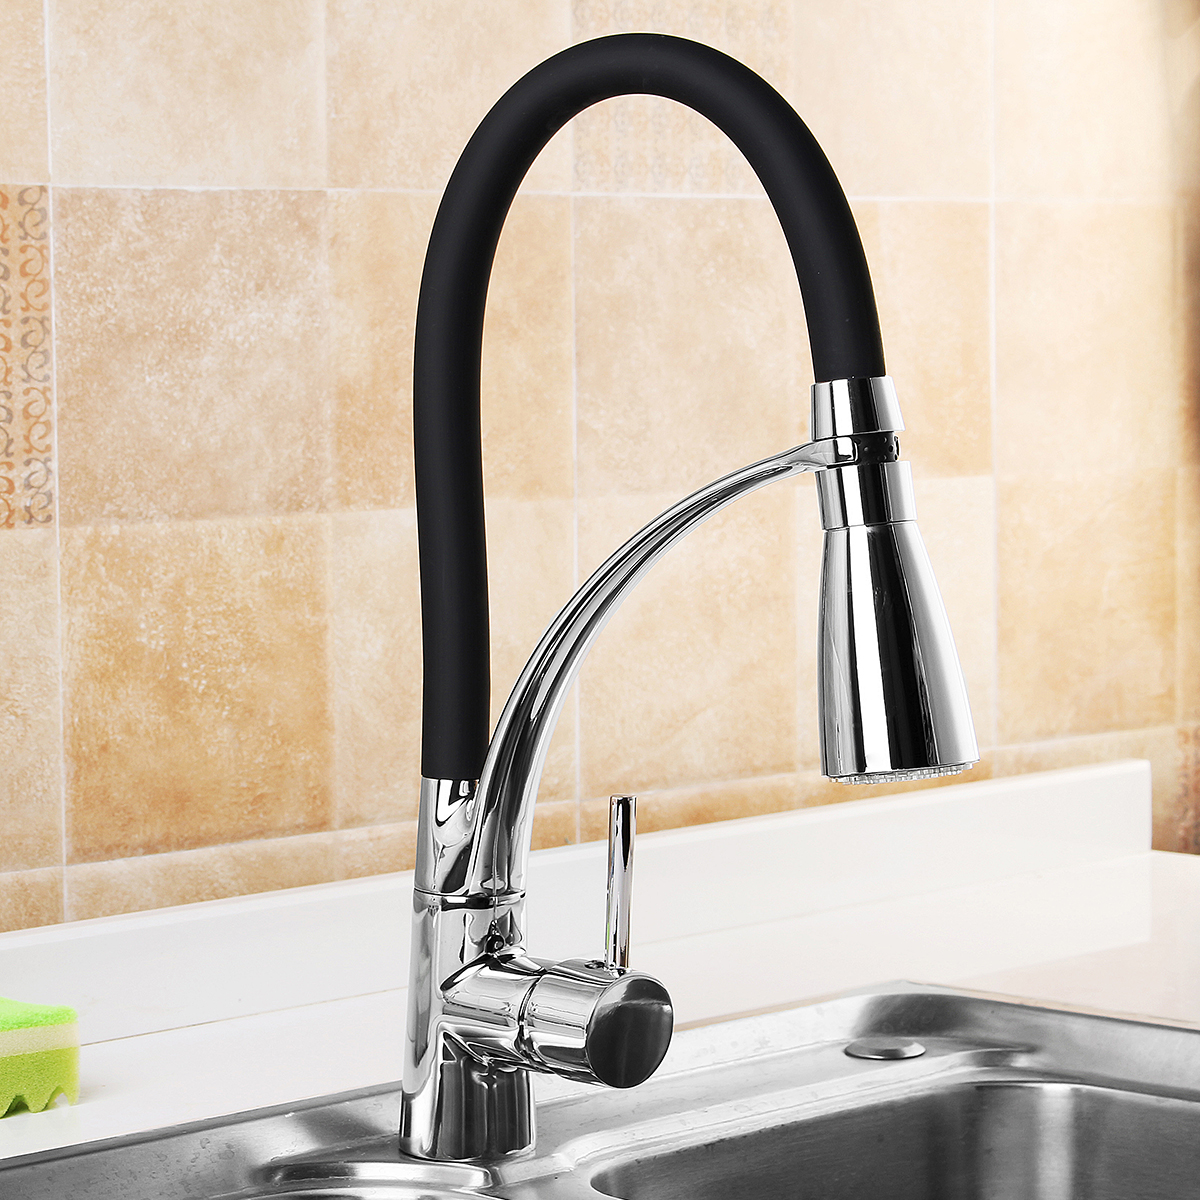 LED Kitchen Sink Faucet Black Chrome Plated Cold Hot Pull Out Spray Faucet Mixer Taps